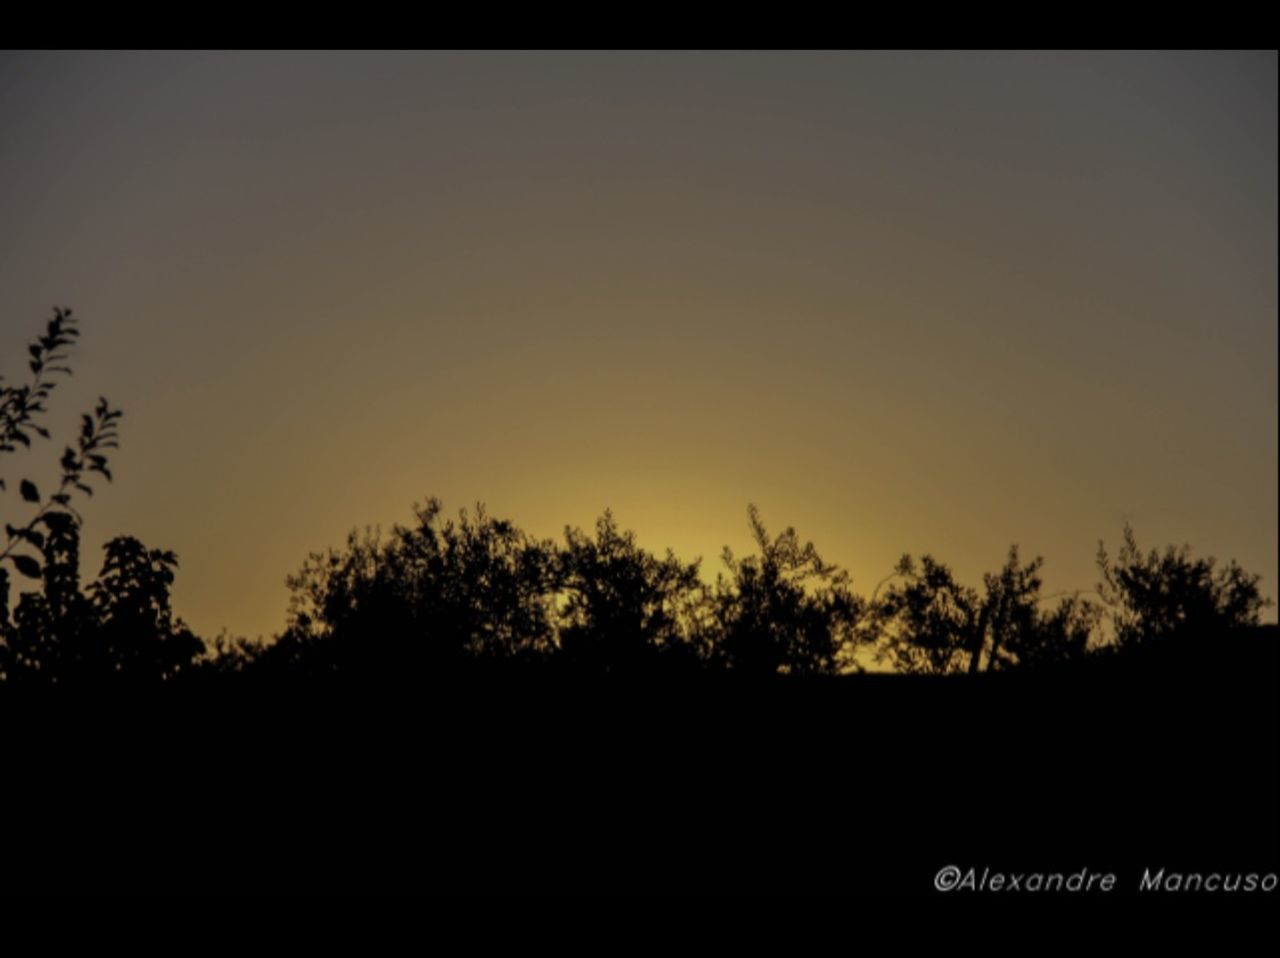 silhouette, sky, tree, sunset, beauty in nature, plant, nature, tranquility, scenics - nature, no people, tranquil scene, copy space, outdoors, growth, clear sky, land, landscape, environment, non-urban scene, dusk